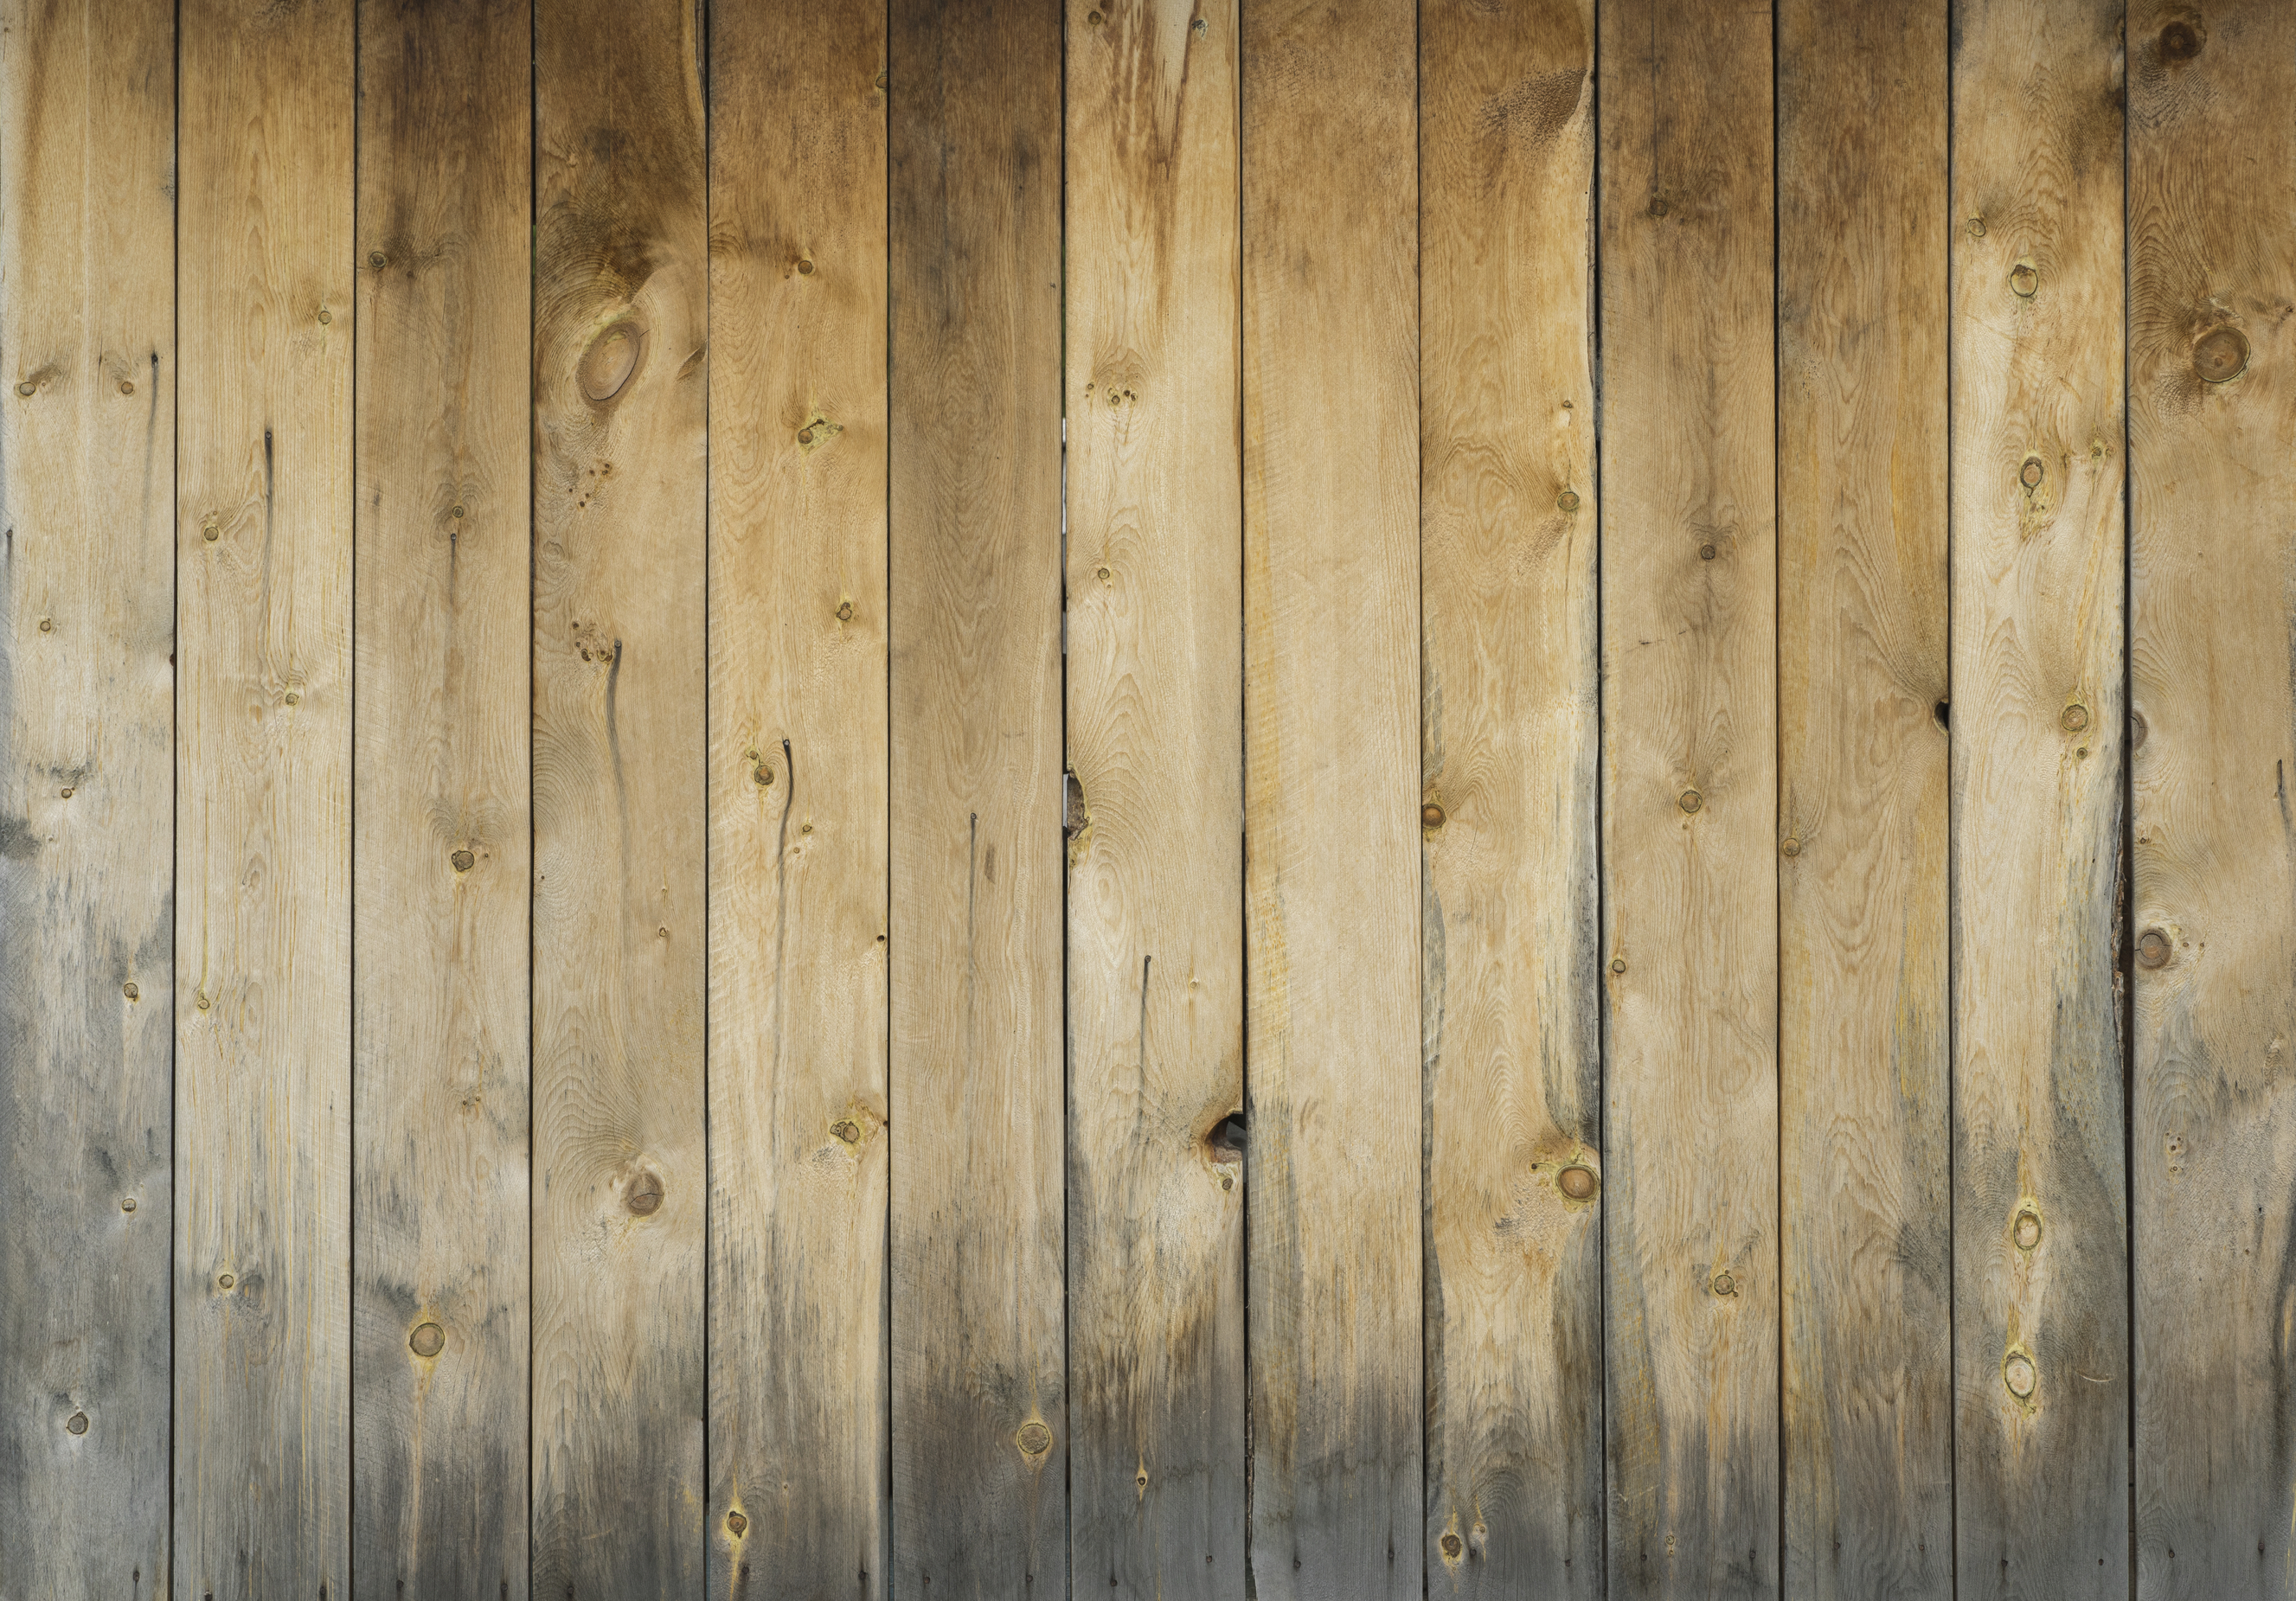 Wood Floor Discoloration: The Culprits and How to Prevent it | City ...